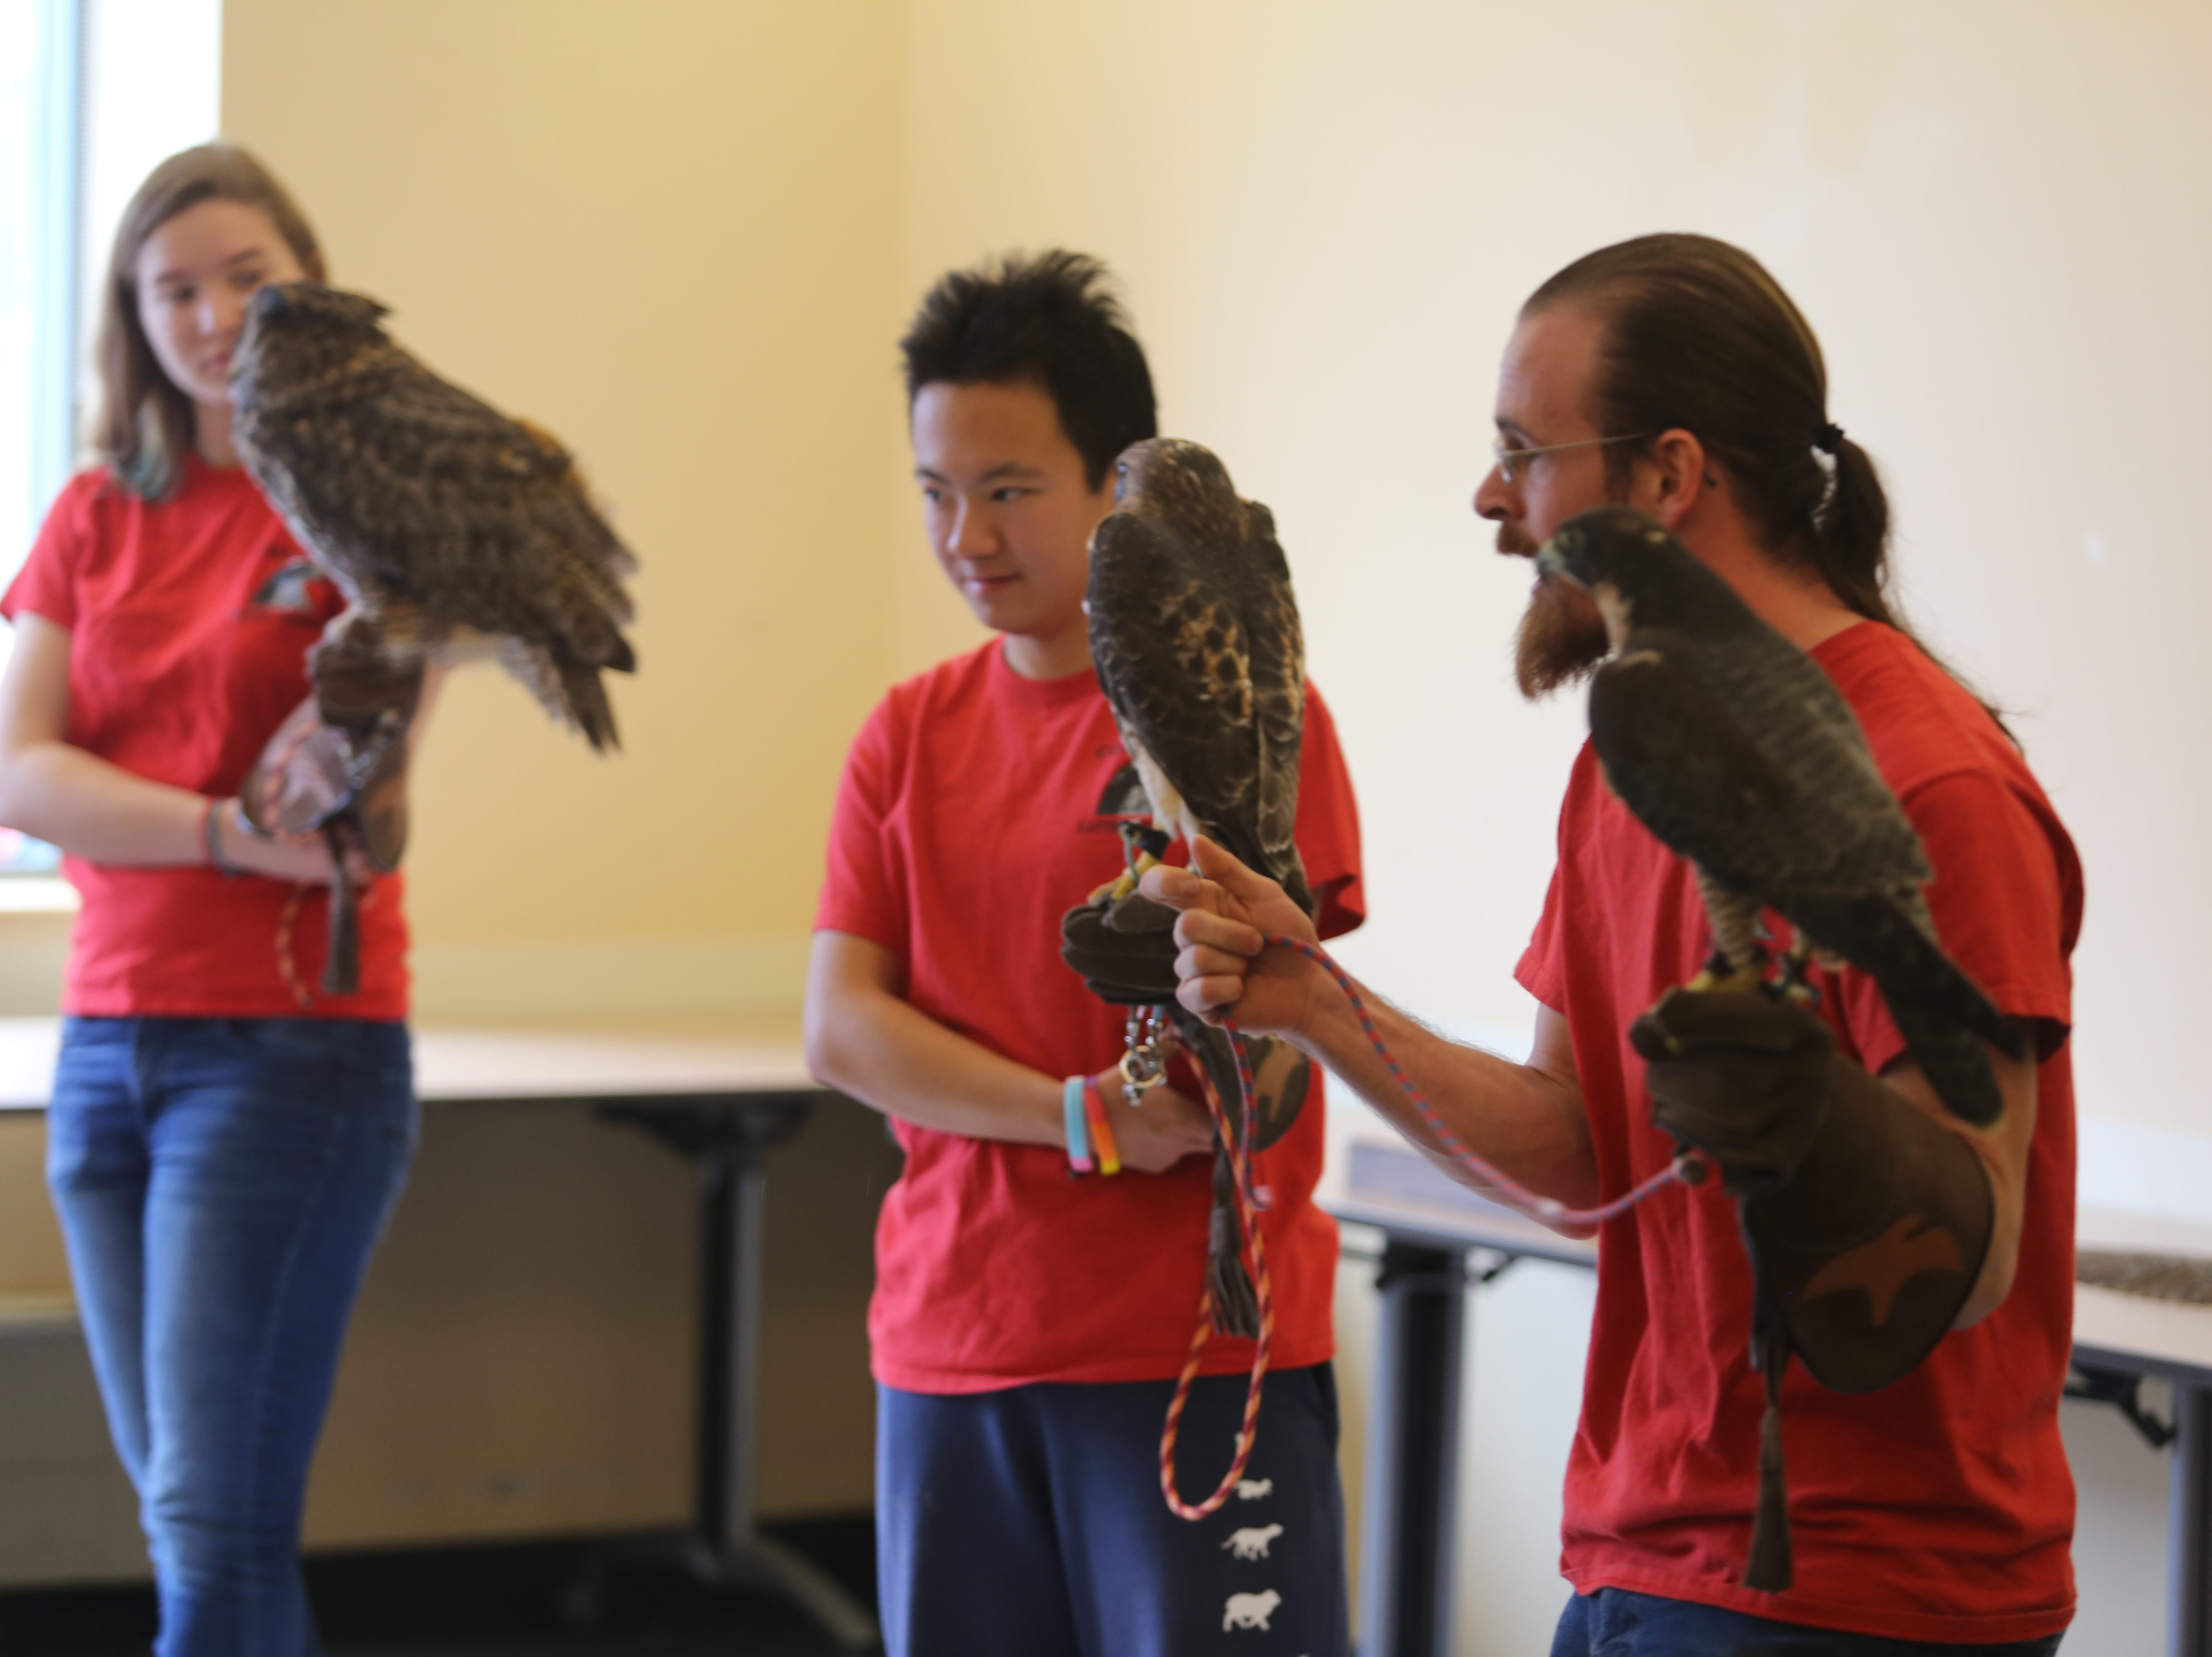 Left to right: Claire Jones, Pit Wang and Andrew Schmalfuss are students in the Cornell Raptor Program. Jones is holding an owl named Gertrude meanwhile Wang and Schmalfuss are holding two other raptors.